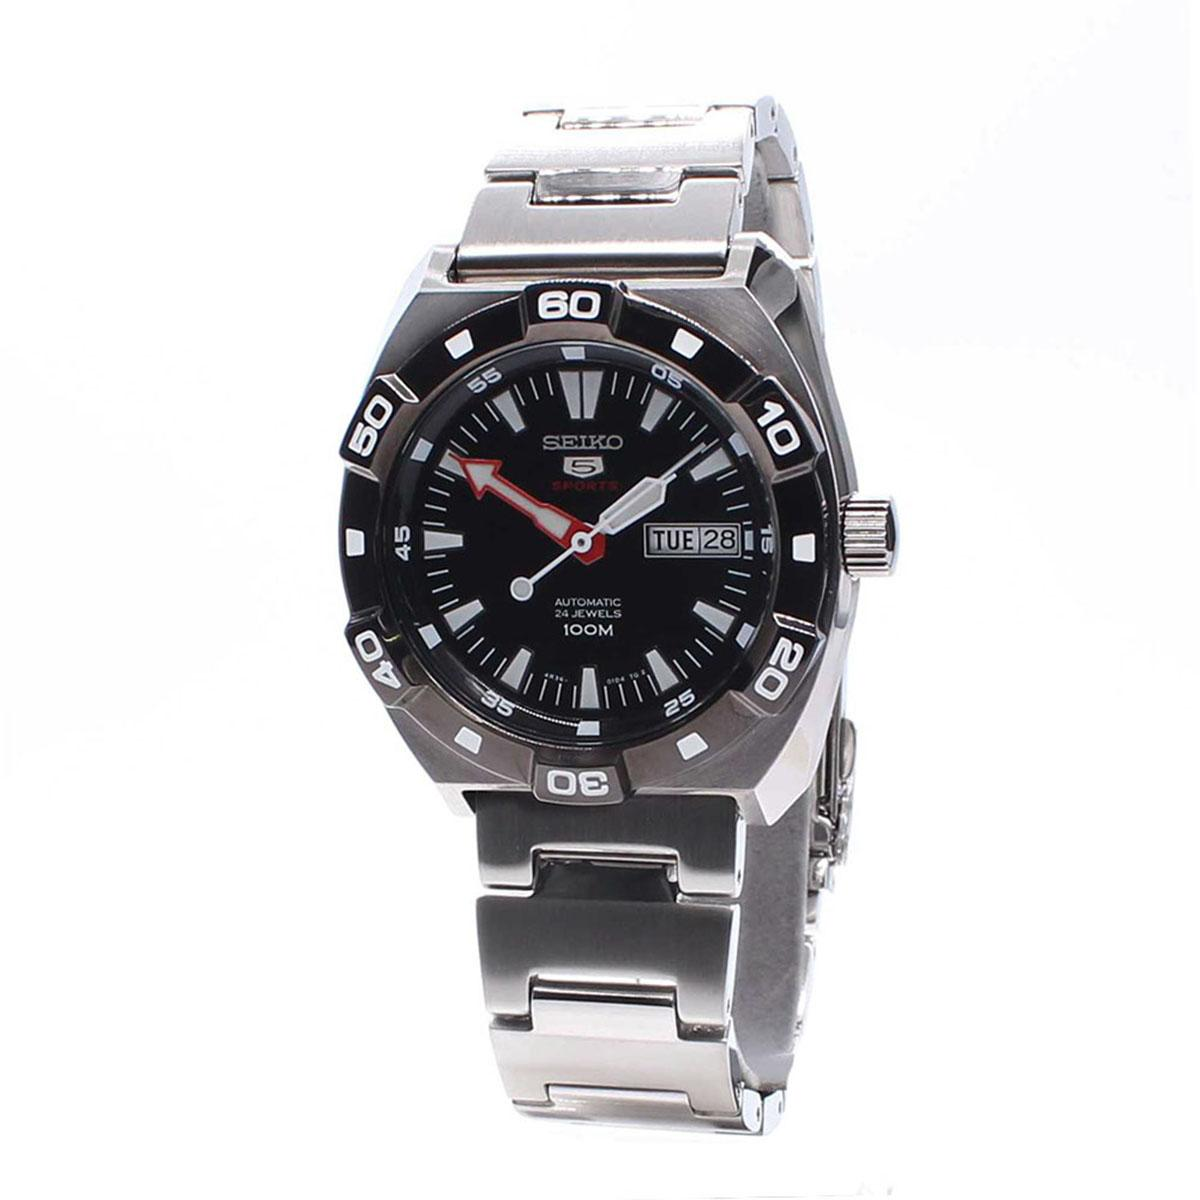 Seiko Seiko 5 Sports Silver Stainless-Steel Case Stainless-Steel Bracelet Mens JAPAN NWT + Warranty SNZG13J1IDR1883300. Rp 1.885.600